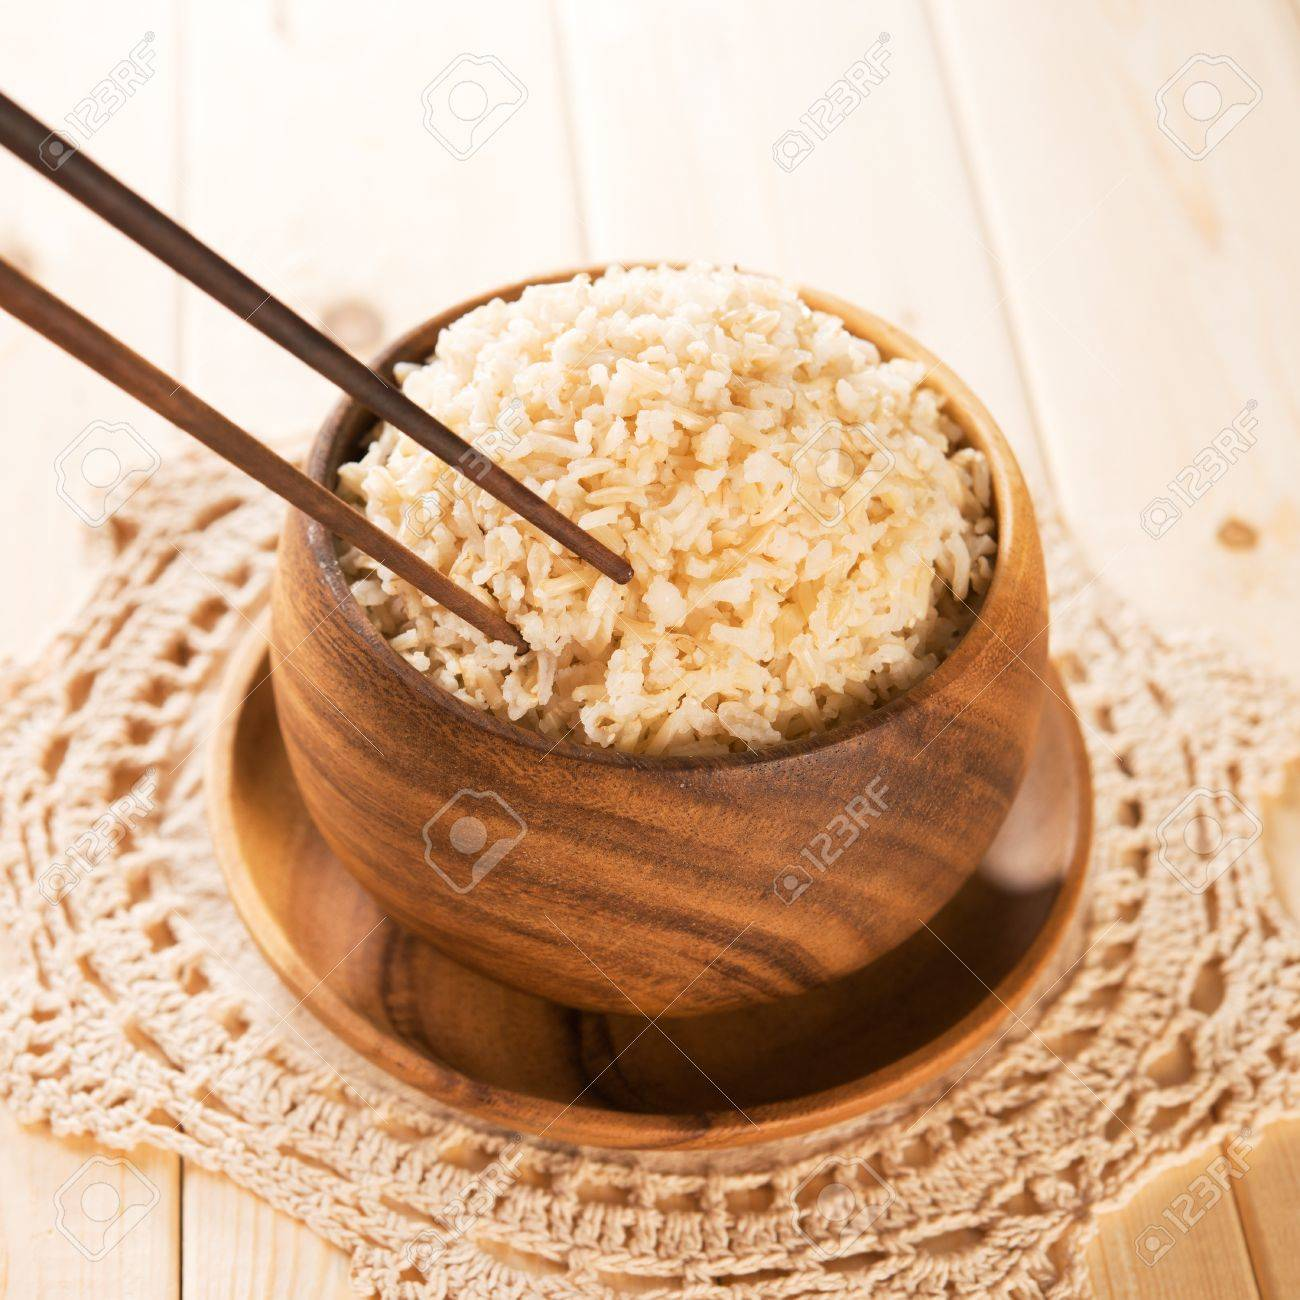 Close Up Cookedanic Basmati Brown Rice In Wooden Bowl With Chopsticks On  Dining Table